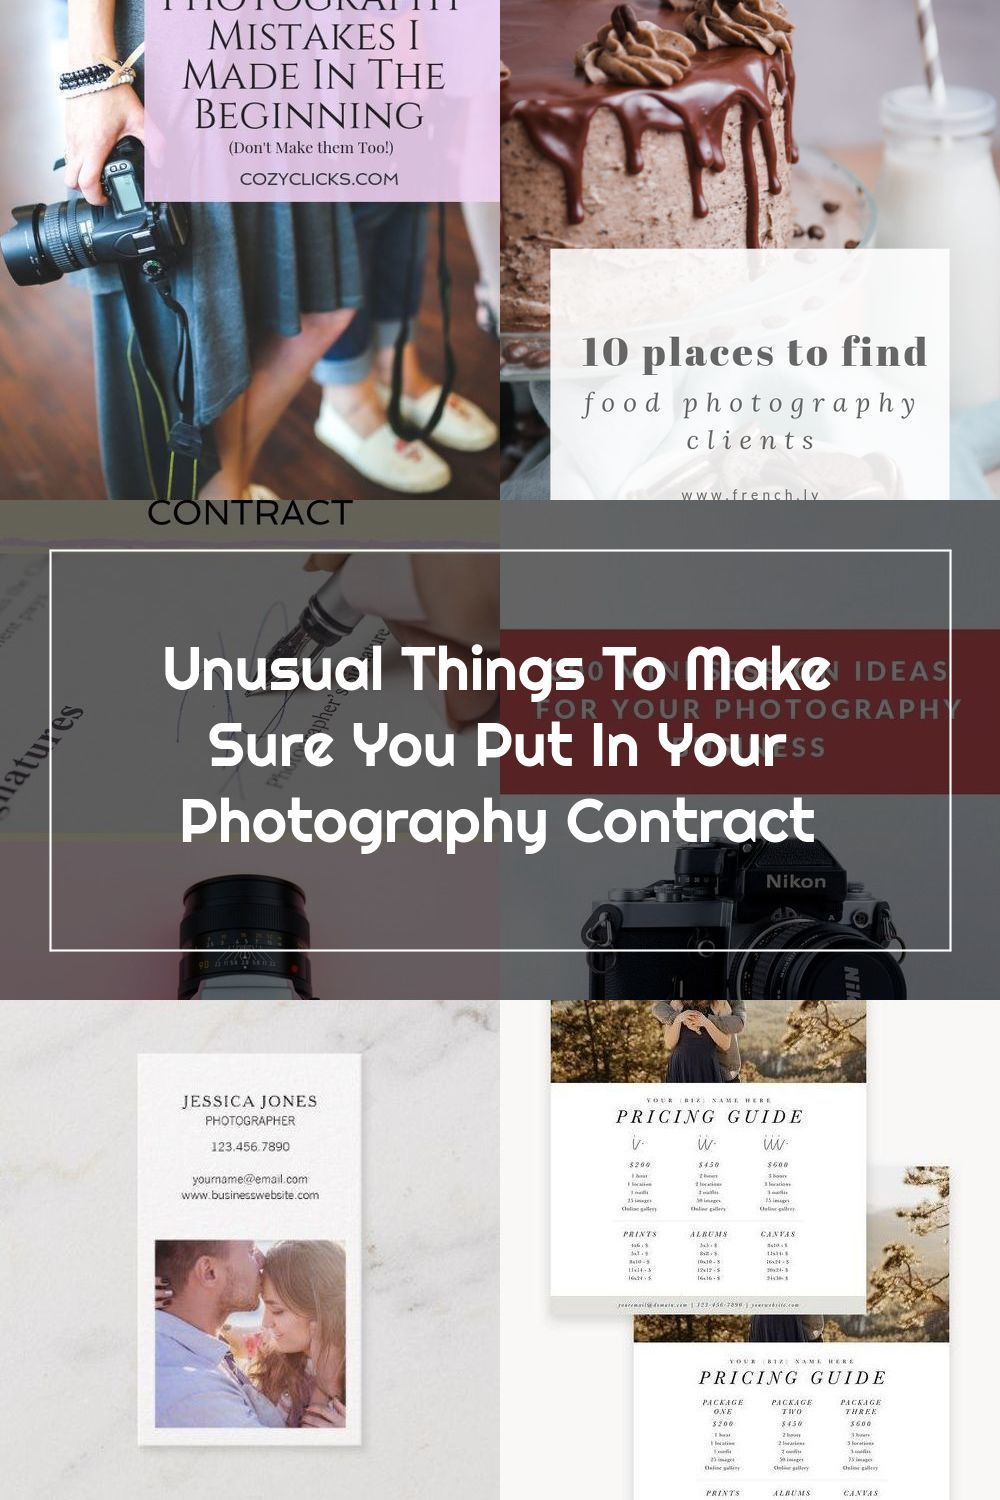 Wondering what o add in your photography contract? Some